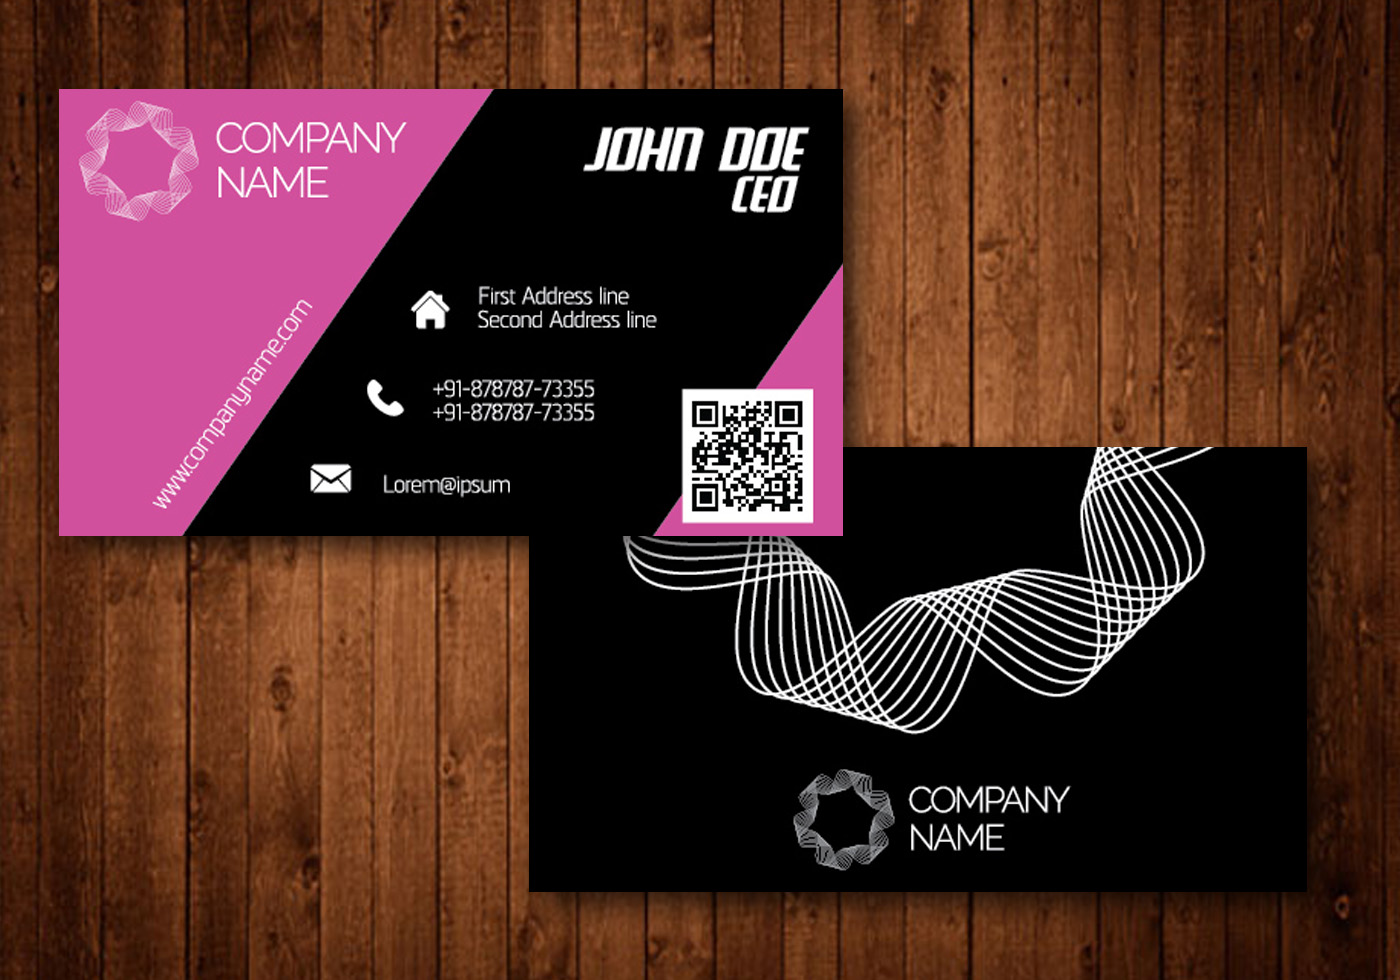 Pink creative business card download free vector art stock pink creative business card download free vector art stock graphics images reheart Image collections